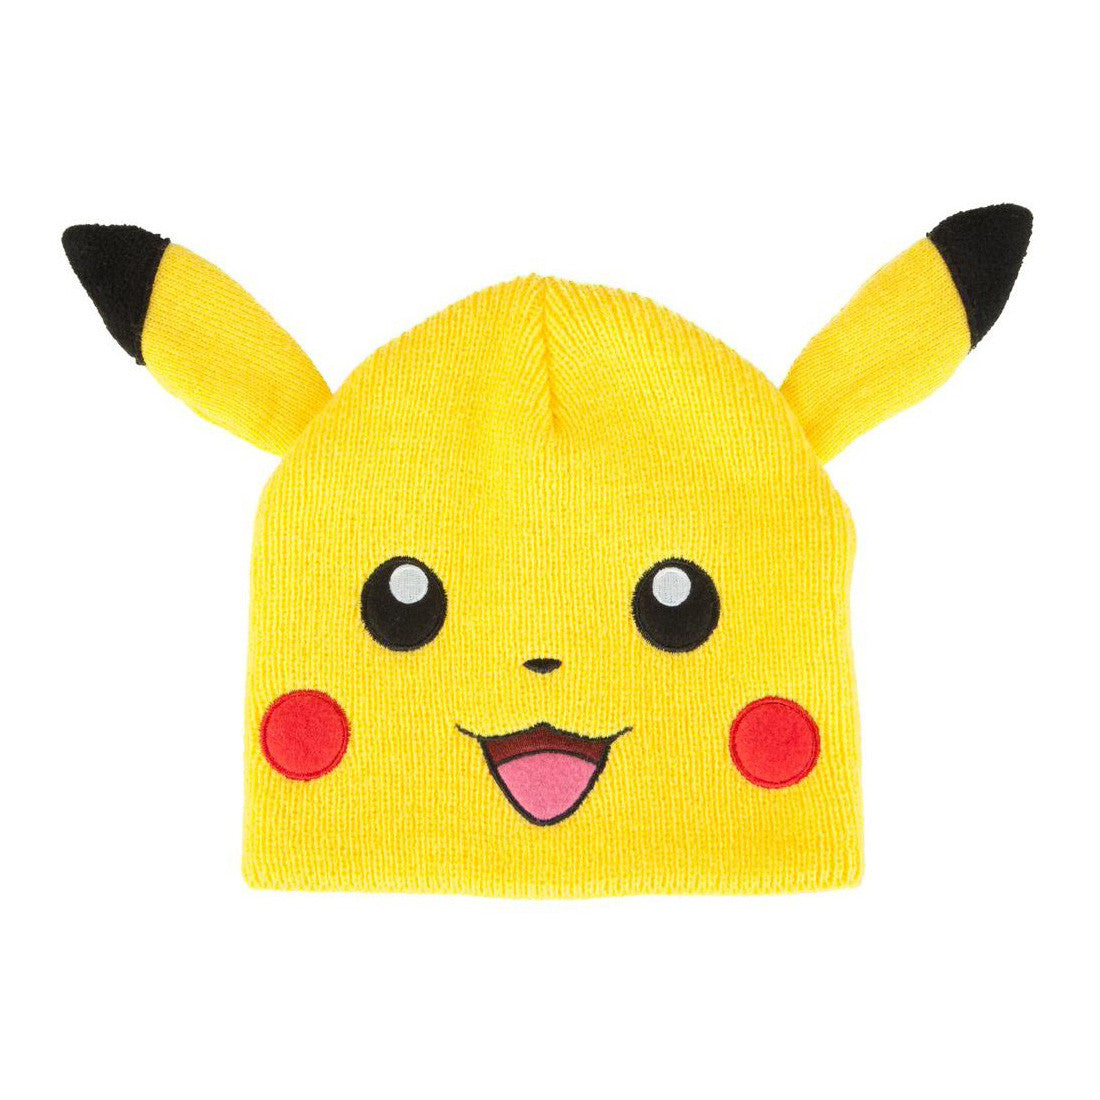 Pokémon Pikachu Beanie with Ears